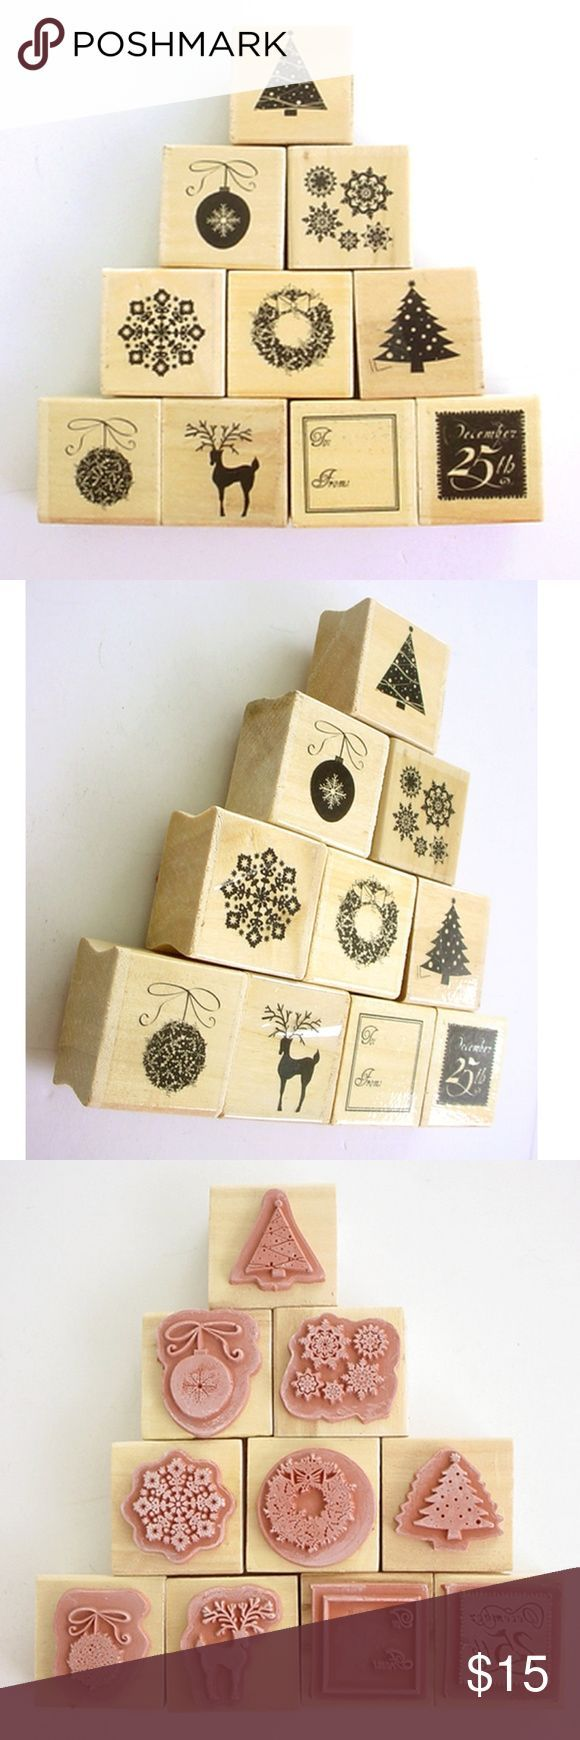 10 Christmas Rubber Stamps Wood Mounted Unused 10 unused wood mounted Christmas ... ,  10 Christmas Rubber Stamps Wood Mounted Unused 10 unused wood mounted Christmas ... ,